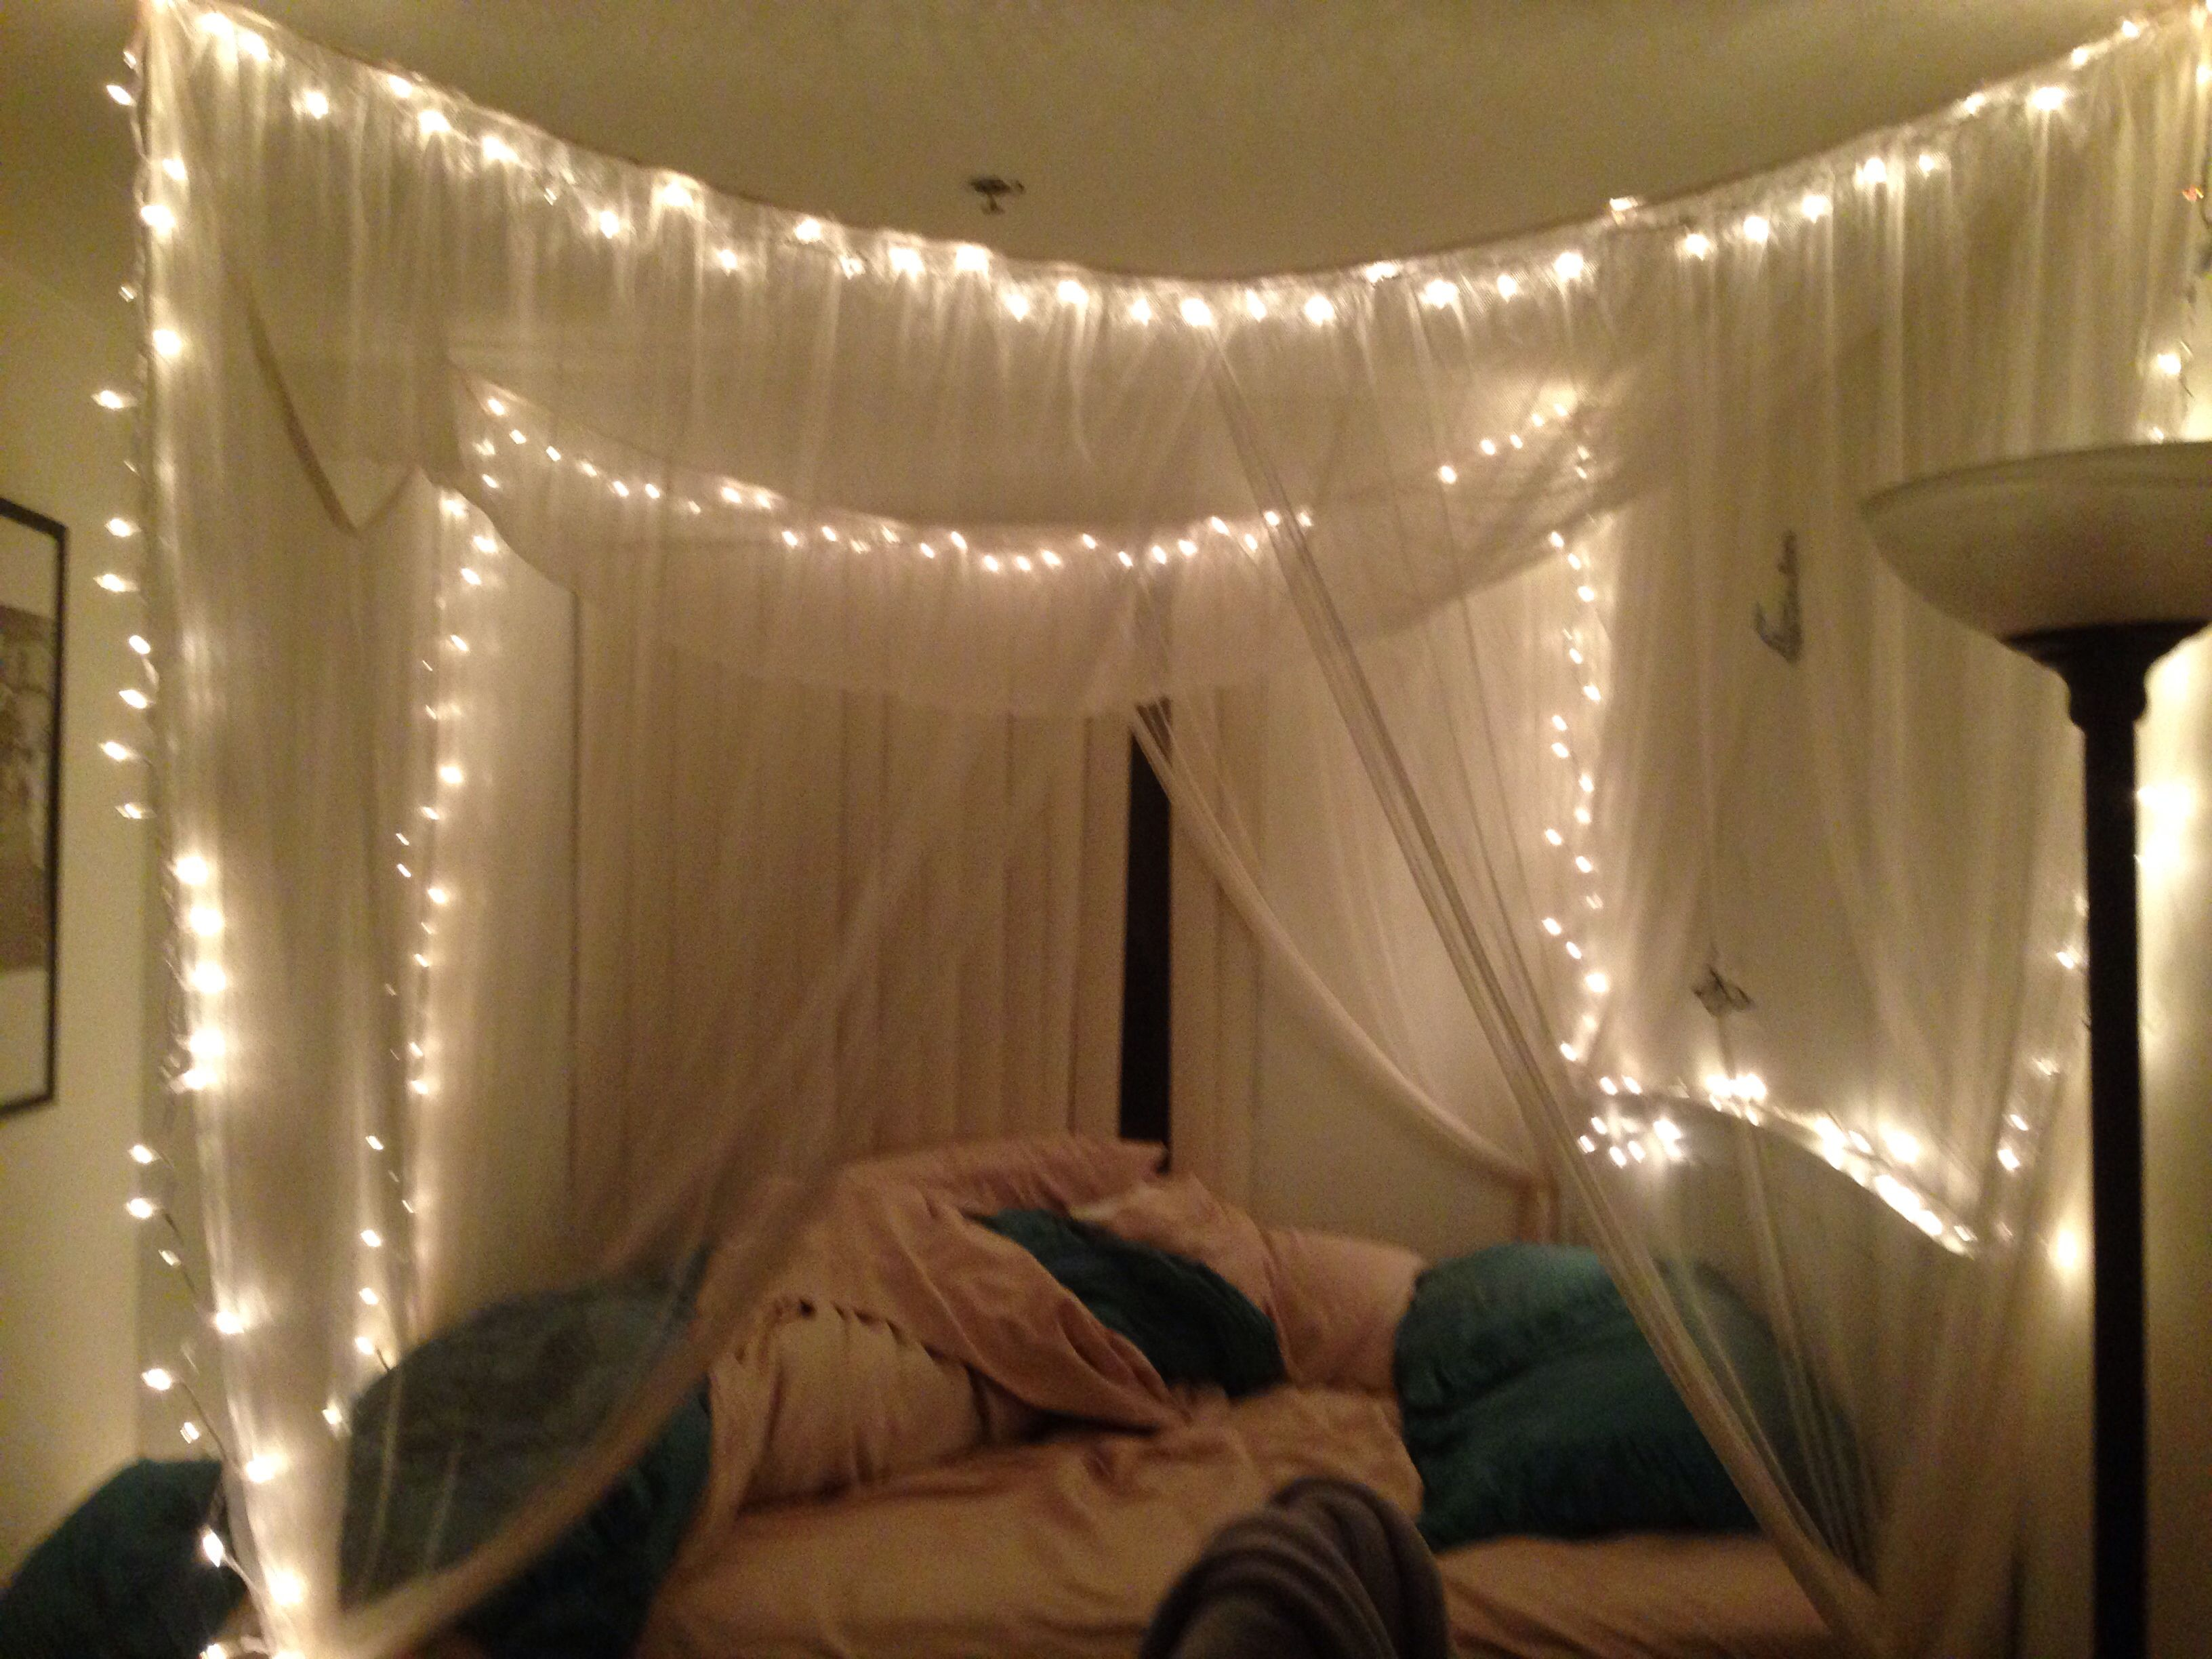 twinkle lights in canopy bed bedroom pinterest. Black Bedroom Furniture Sets. Home Design Ideas